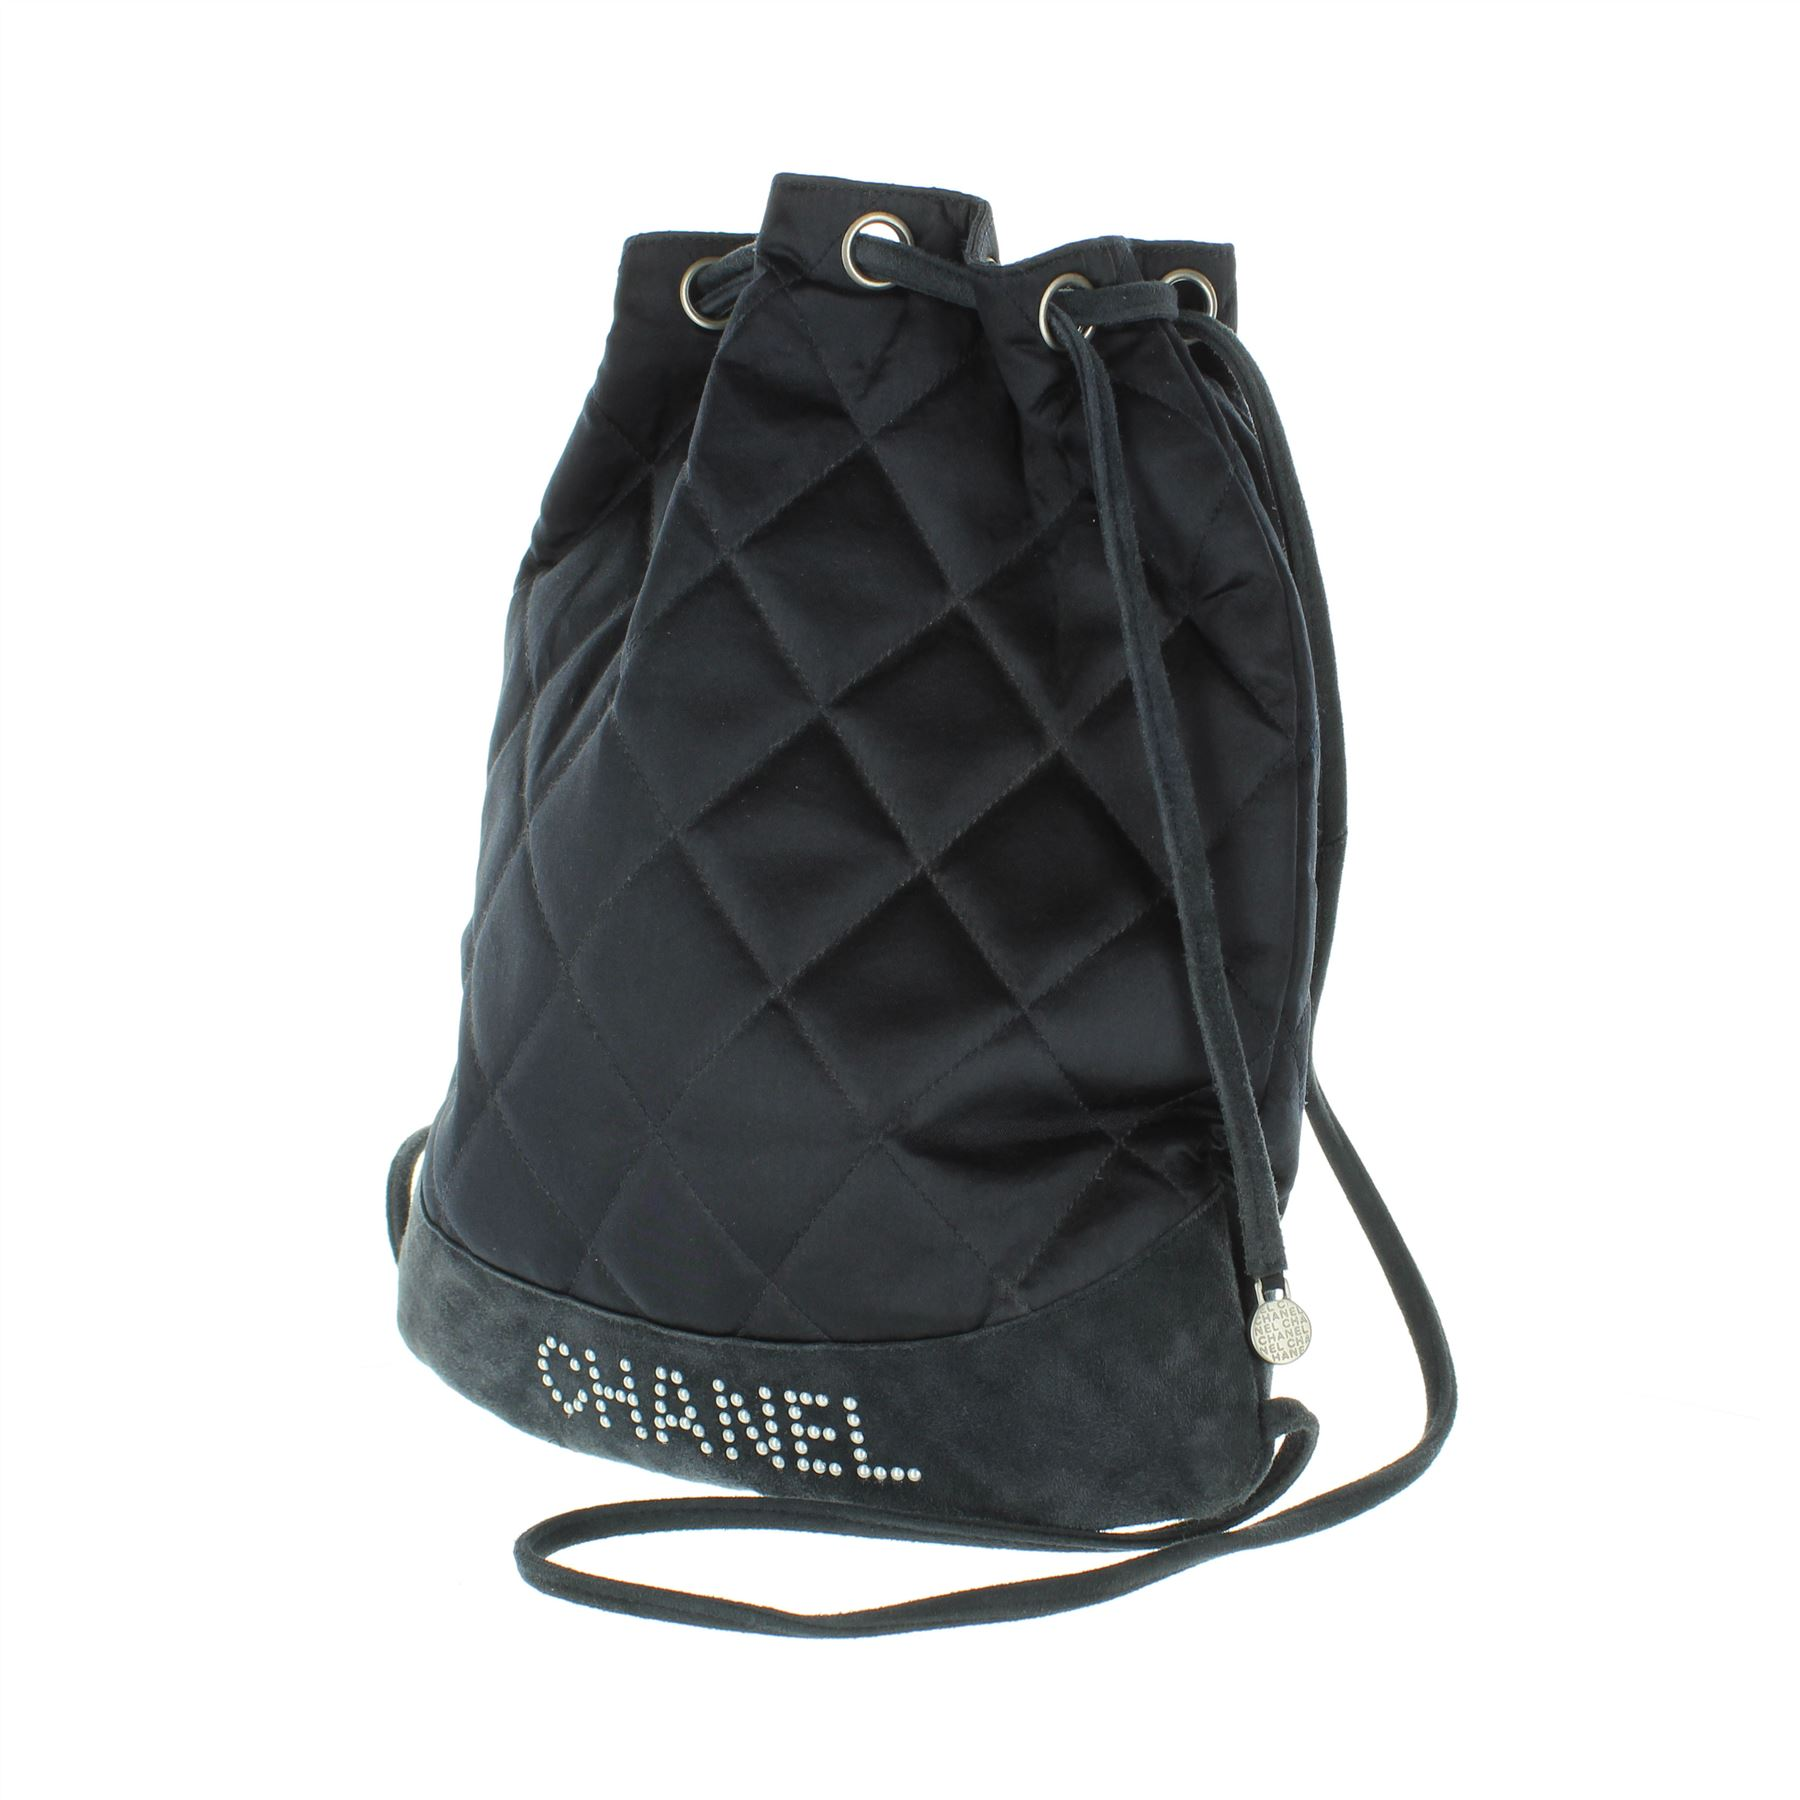 cff6bc6dab08 CHANEL Quilted Navy Blue Satin Backpack, 11.75